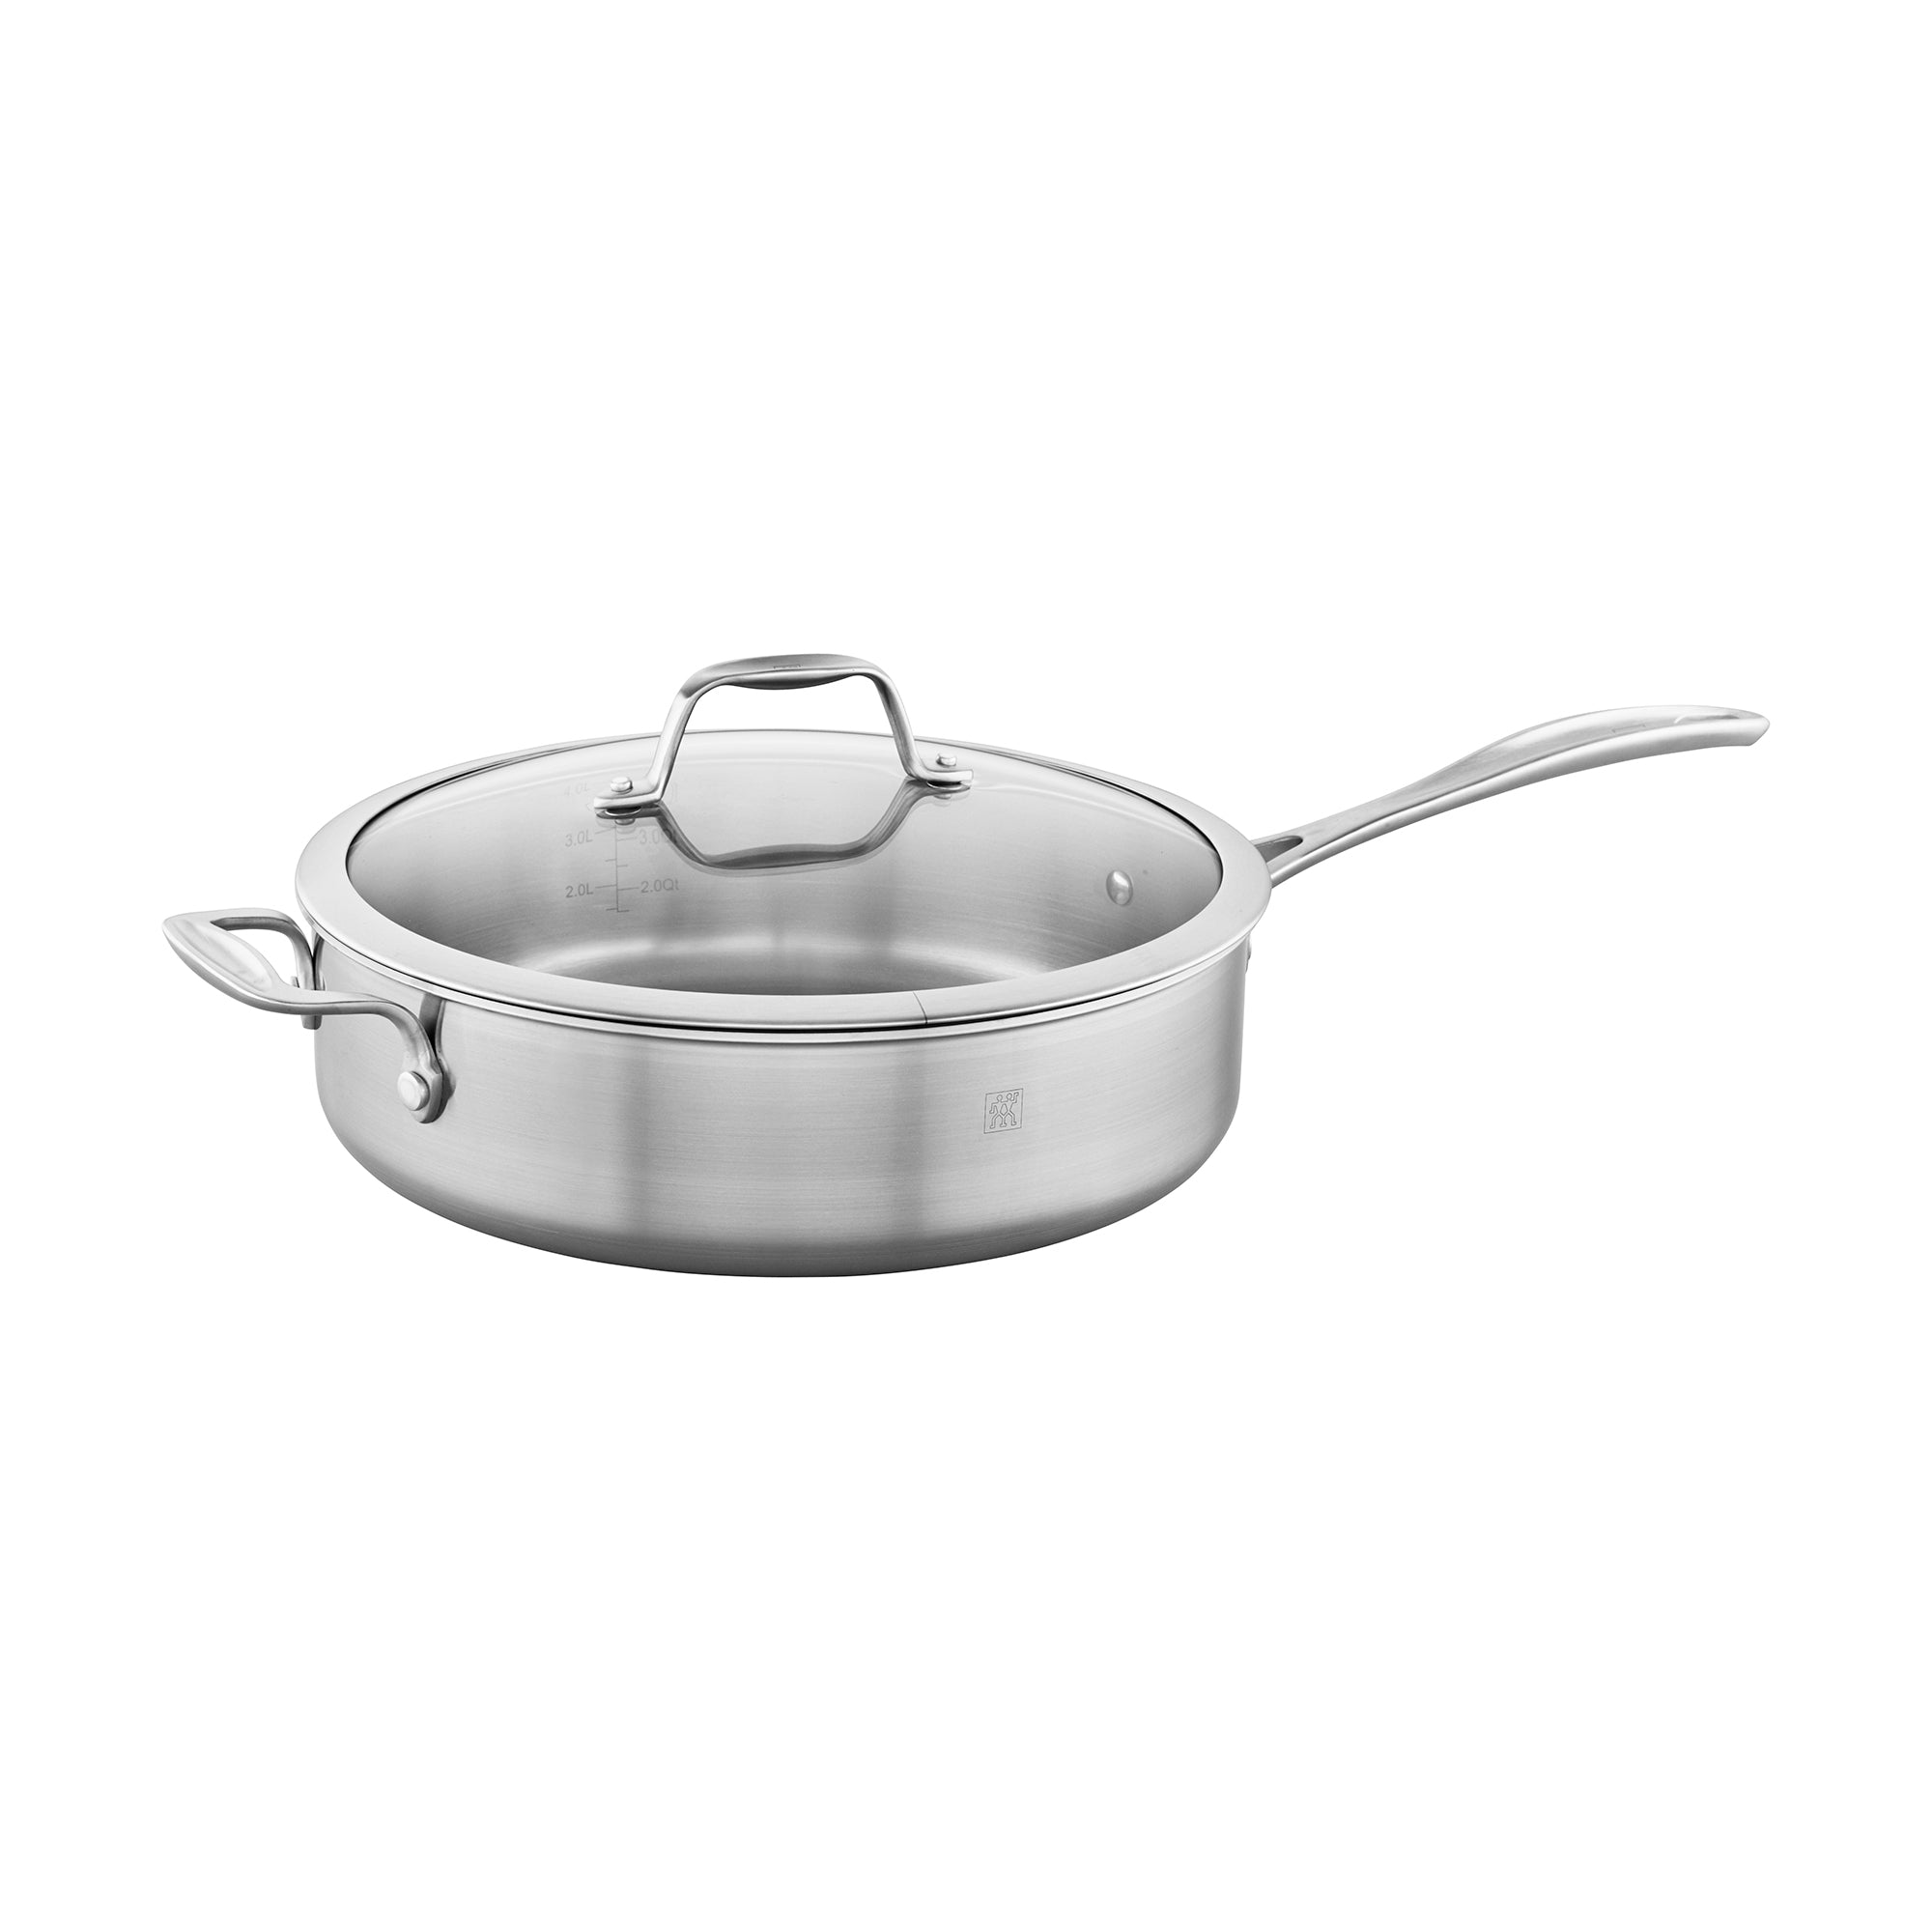 Zwilling Spirit Tri-ply 5-qt Stainless Steel Saute Pan